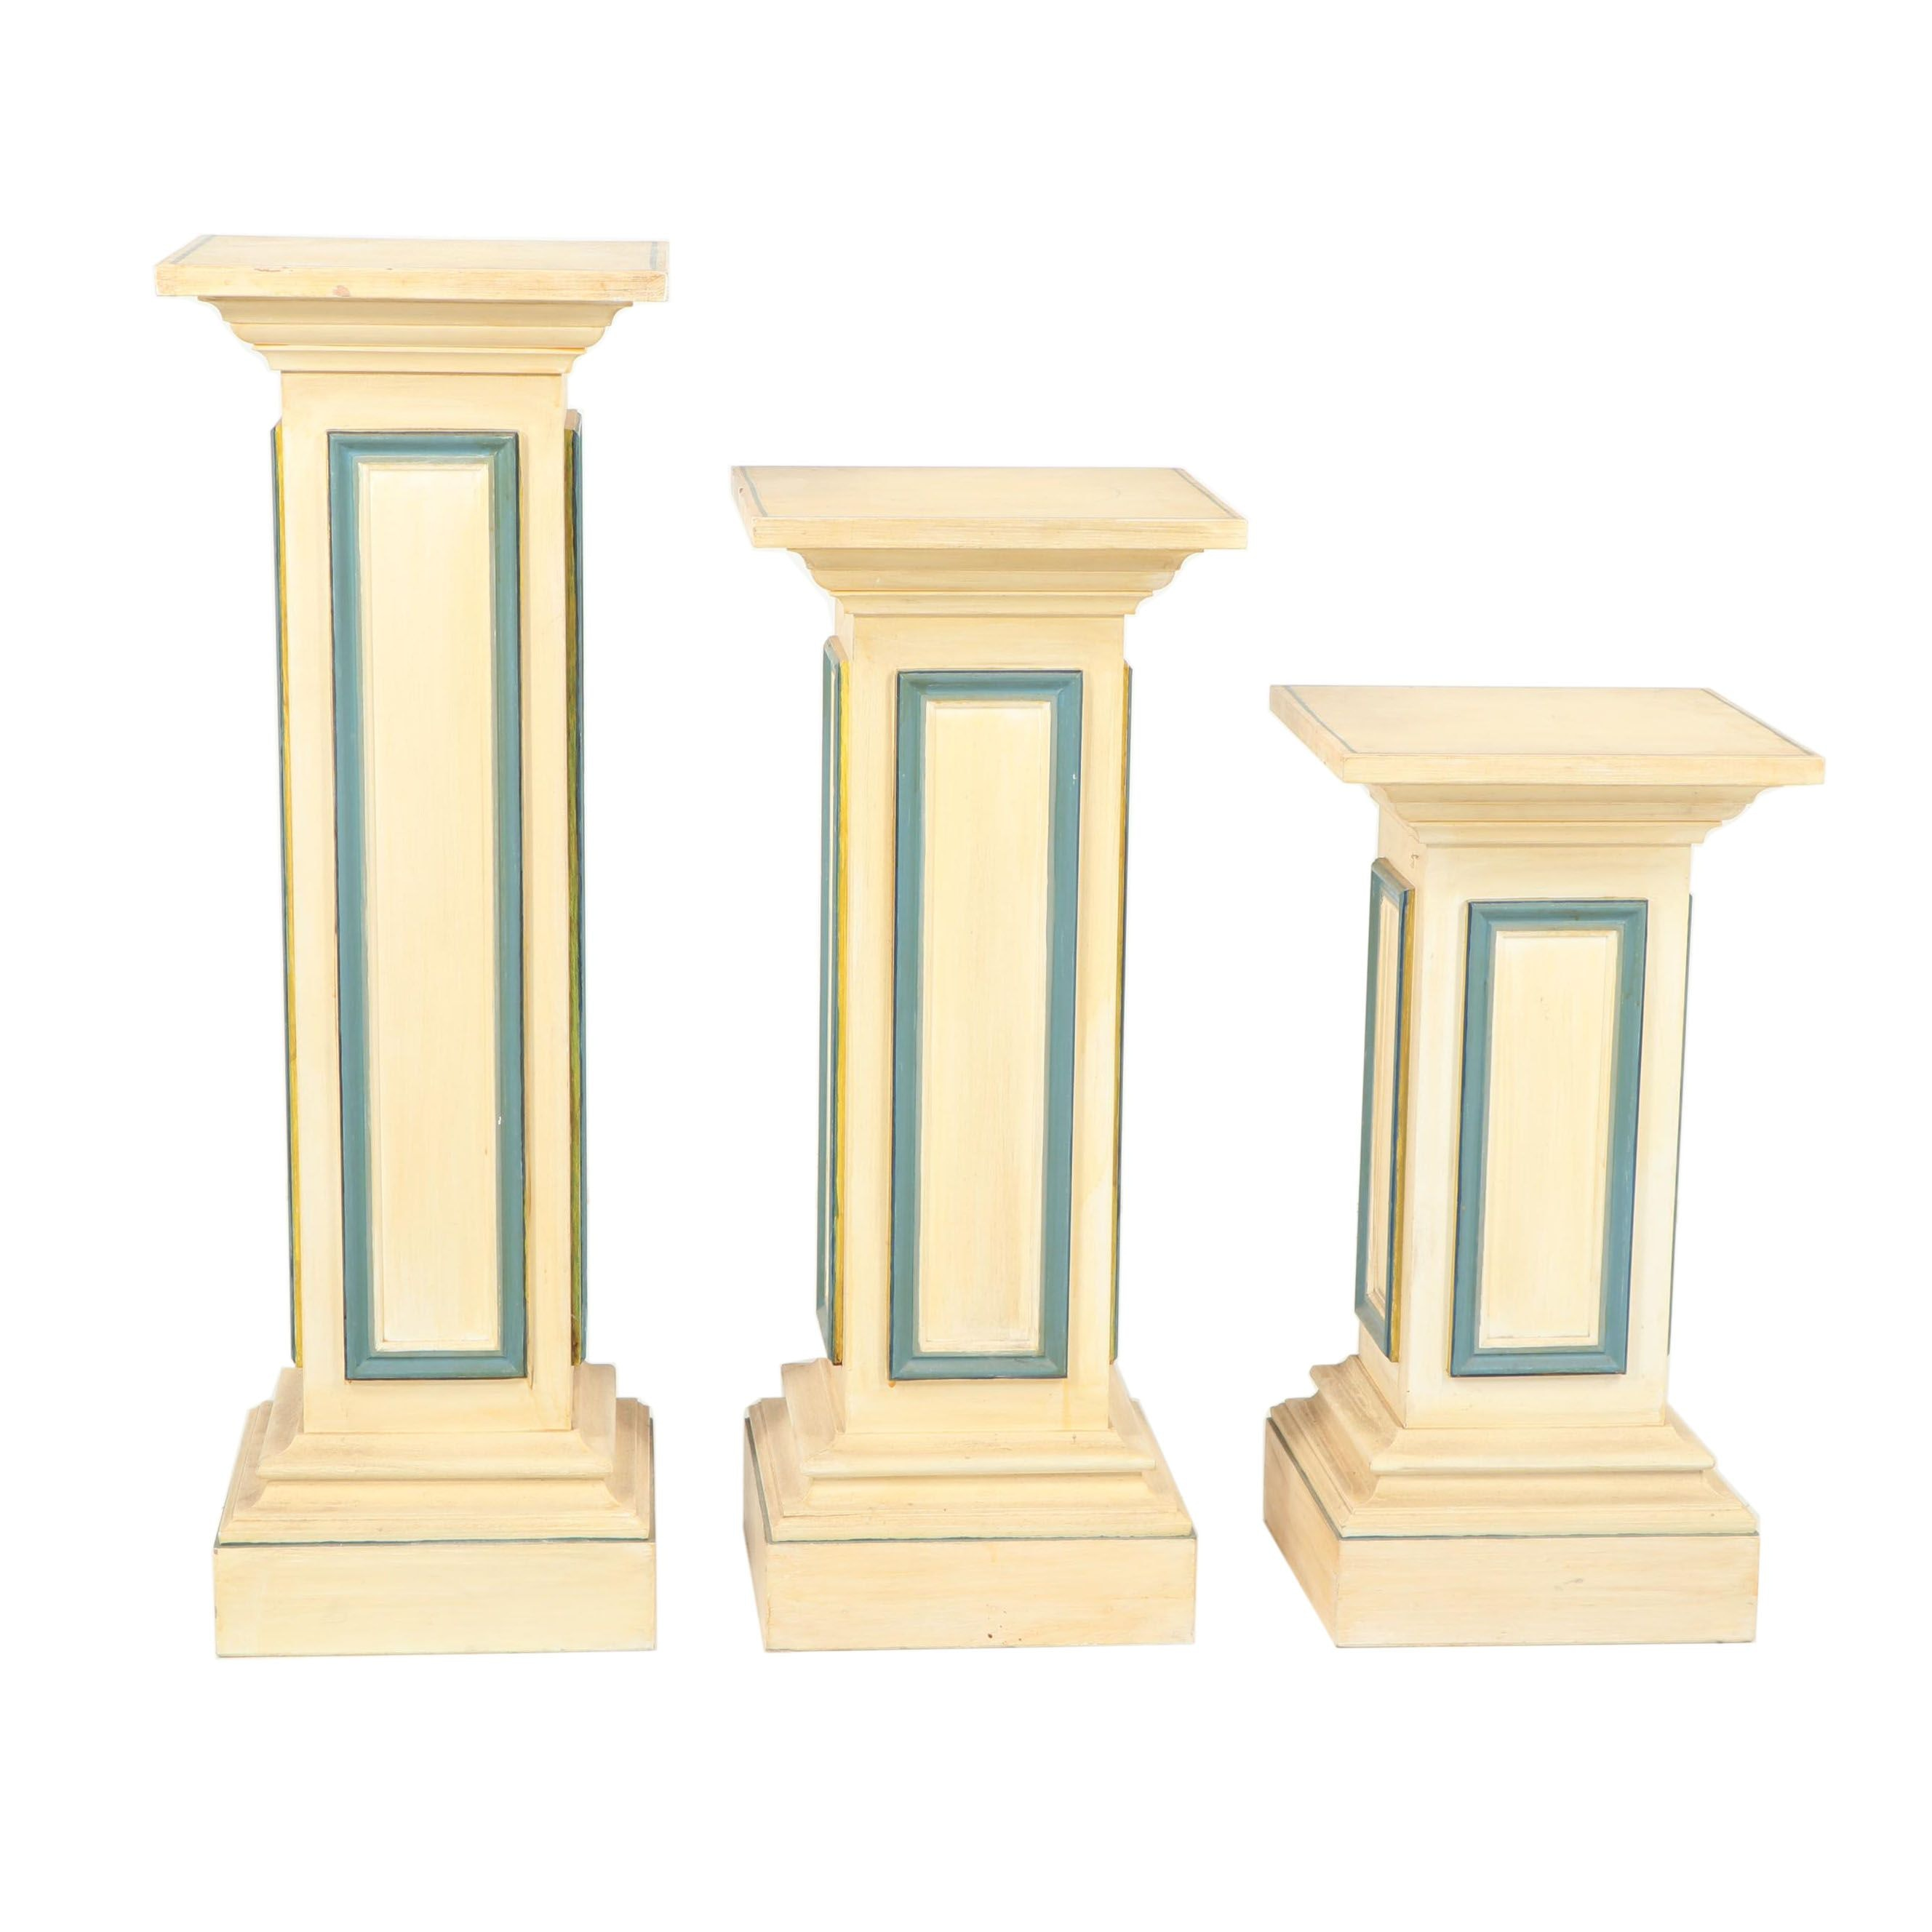 Painted Wood Pedestal Plant Stands, 21st Century